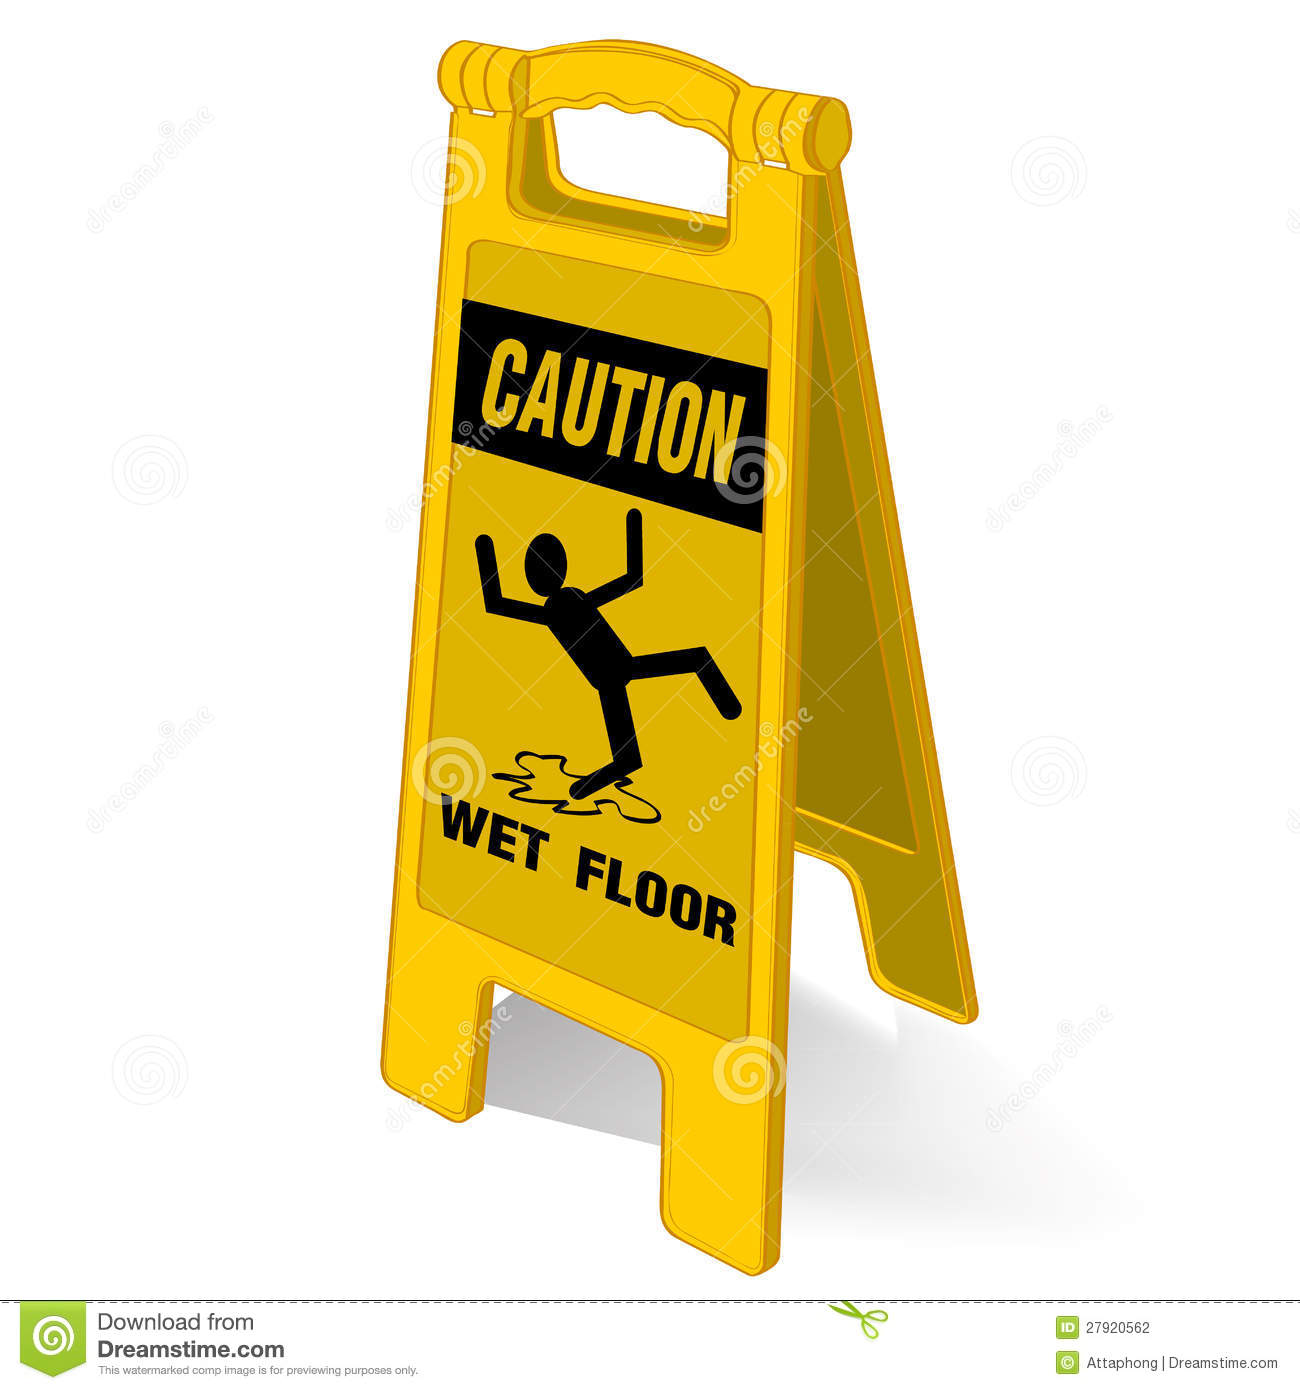 caution wet floor sign stock photography image 27920562. Black Bedroom Furniture Sets. Home Design Ideas